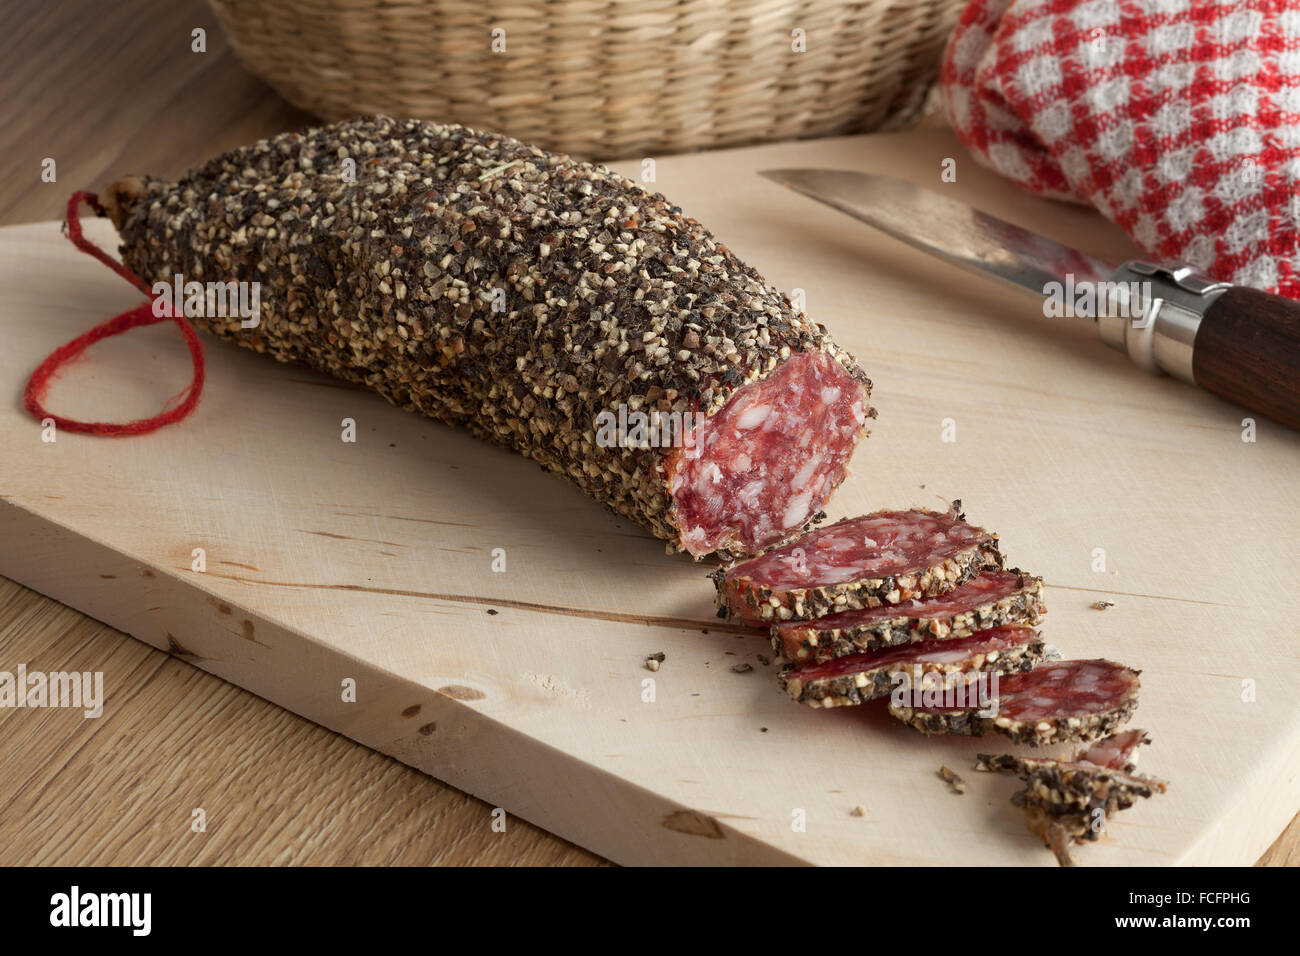 French sausage covered with black and white pepper - Stock Image